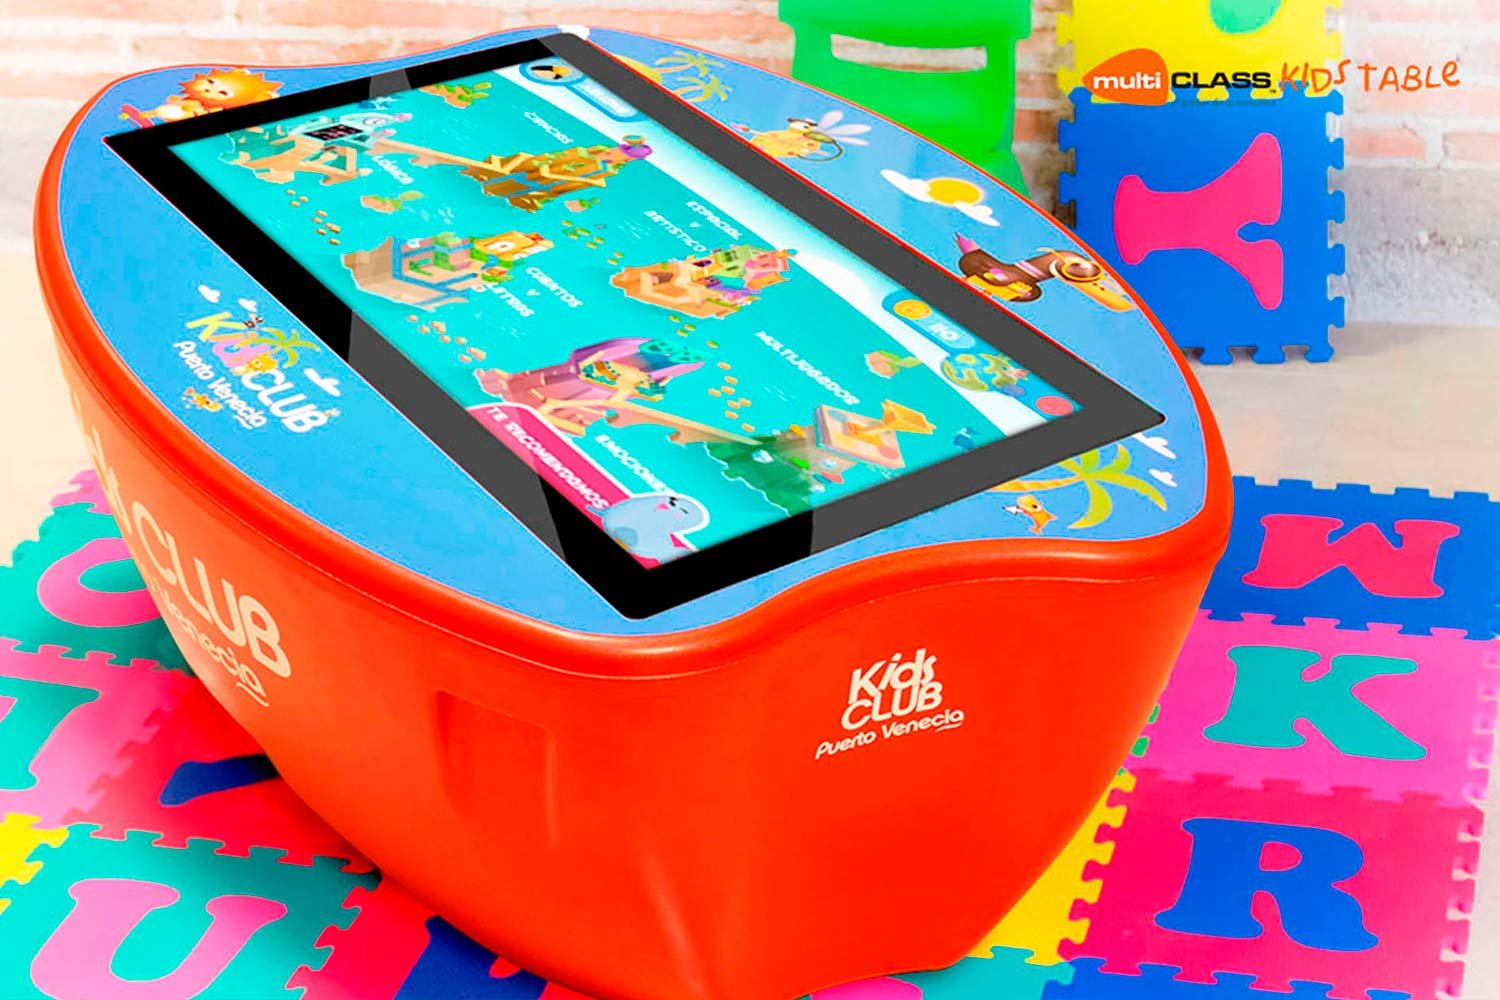 Touchscreen table multiCLASS Kids Table Kids Corners